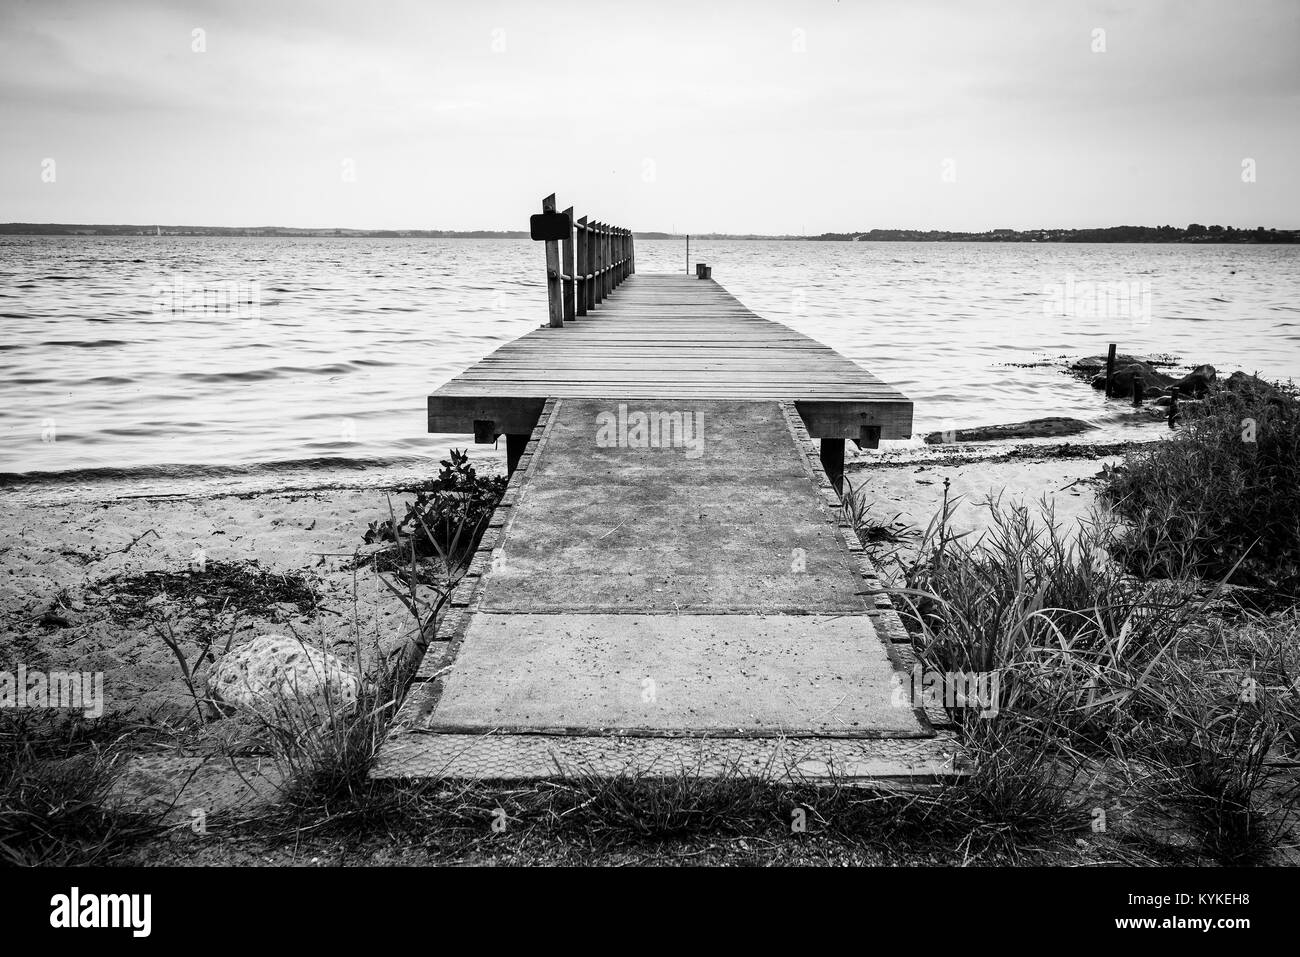 Wooden pier by the sea on a nordic beach in cloudy weather in black and white colors - Stock Image